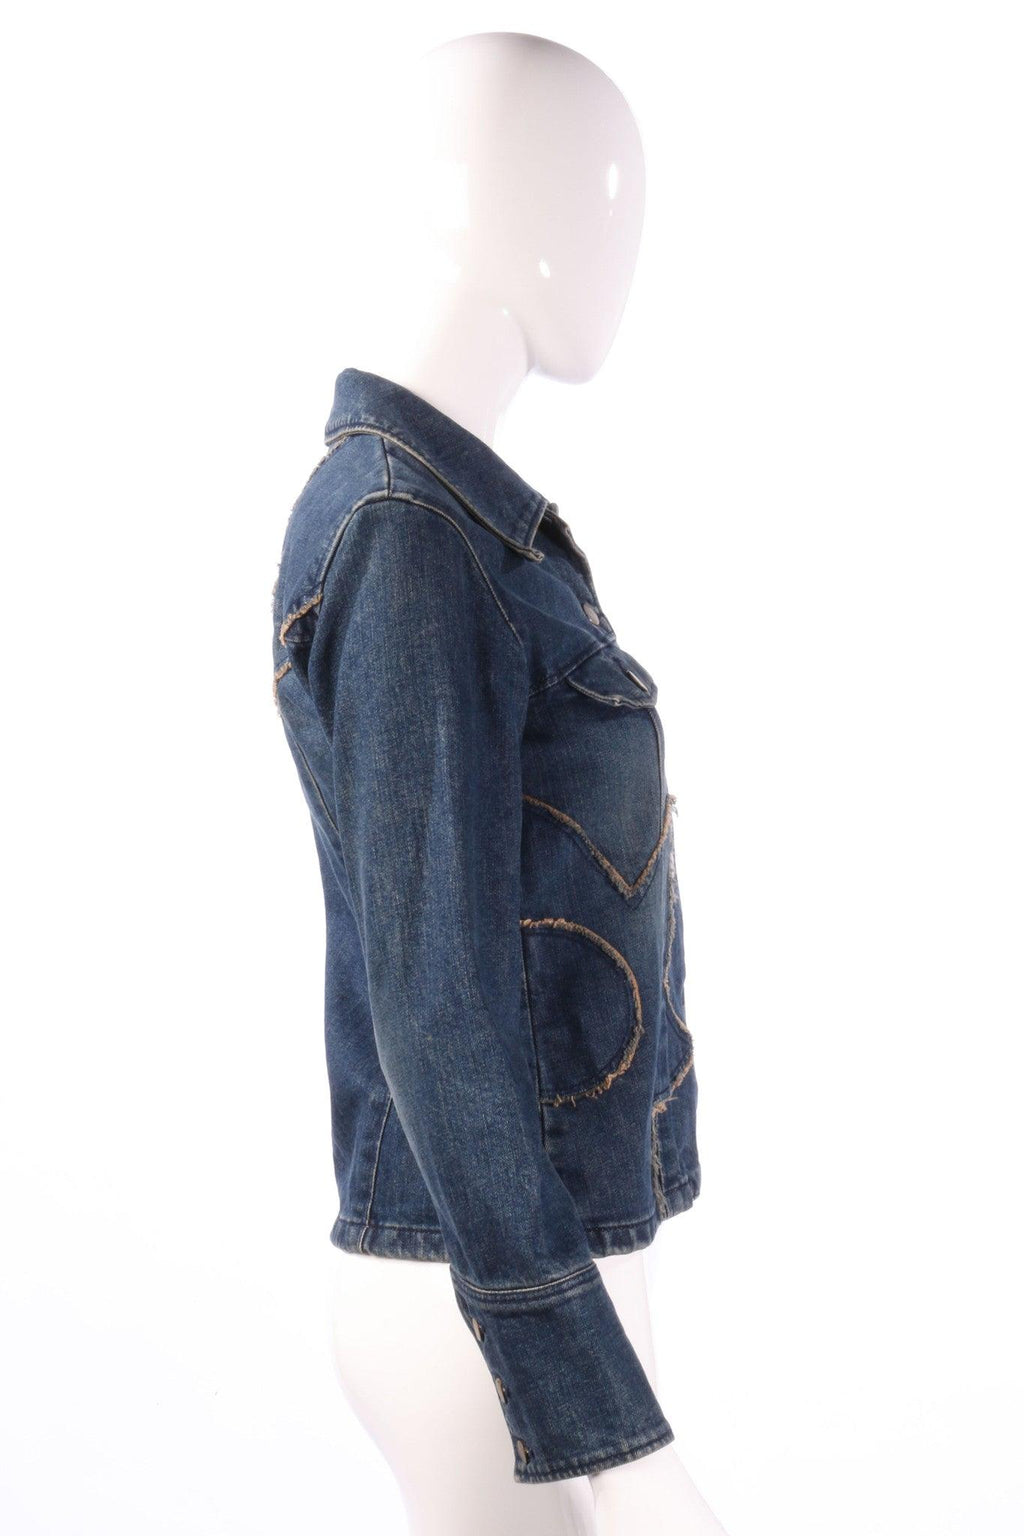 Parick Cox wanabe denim jacket side